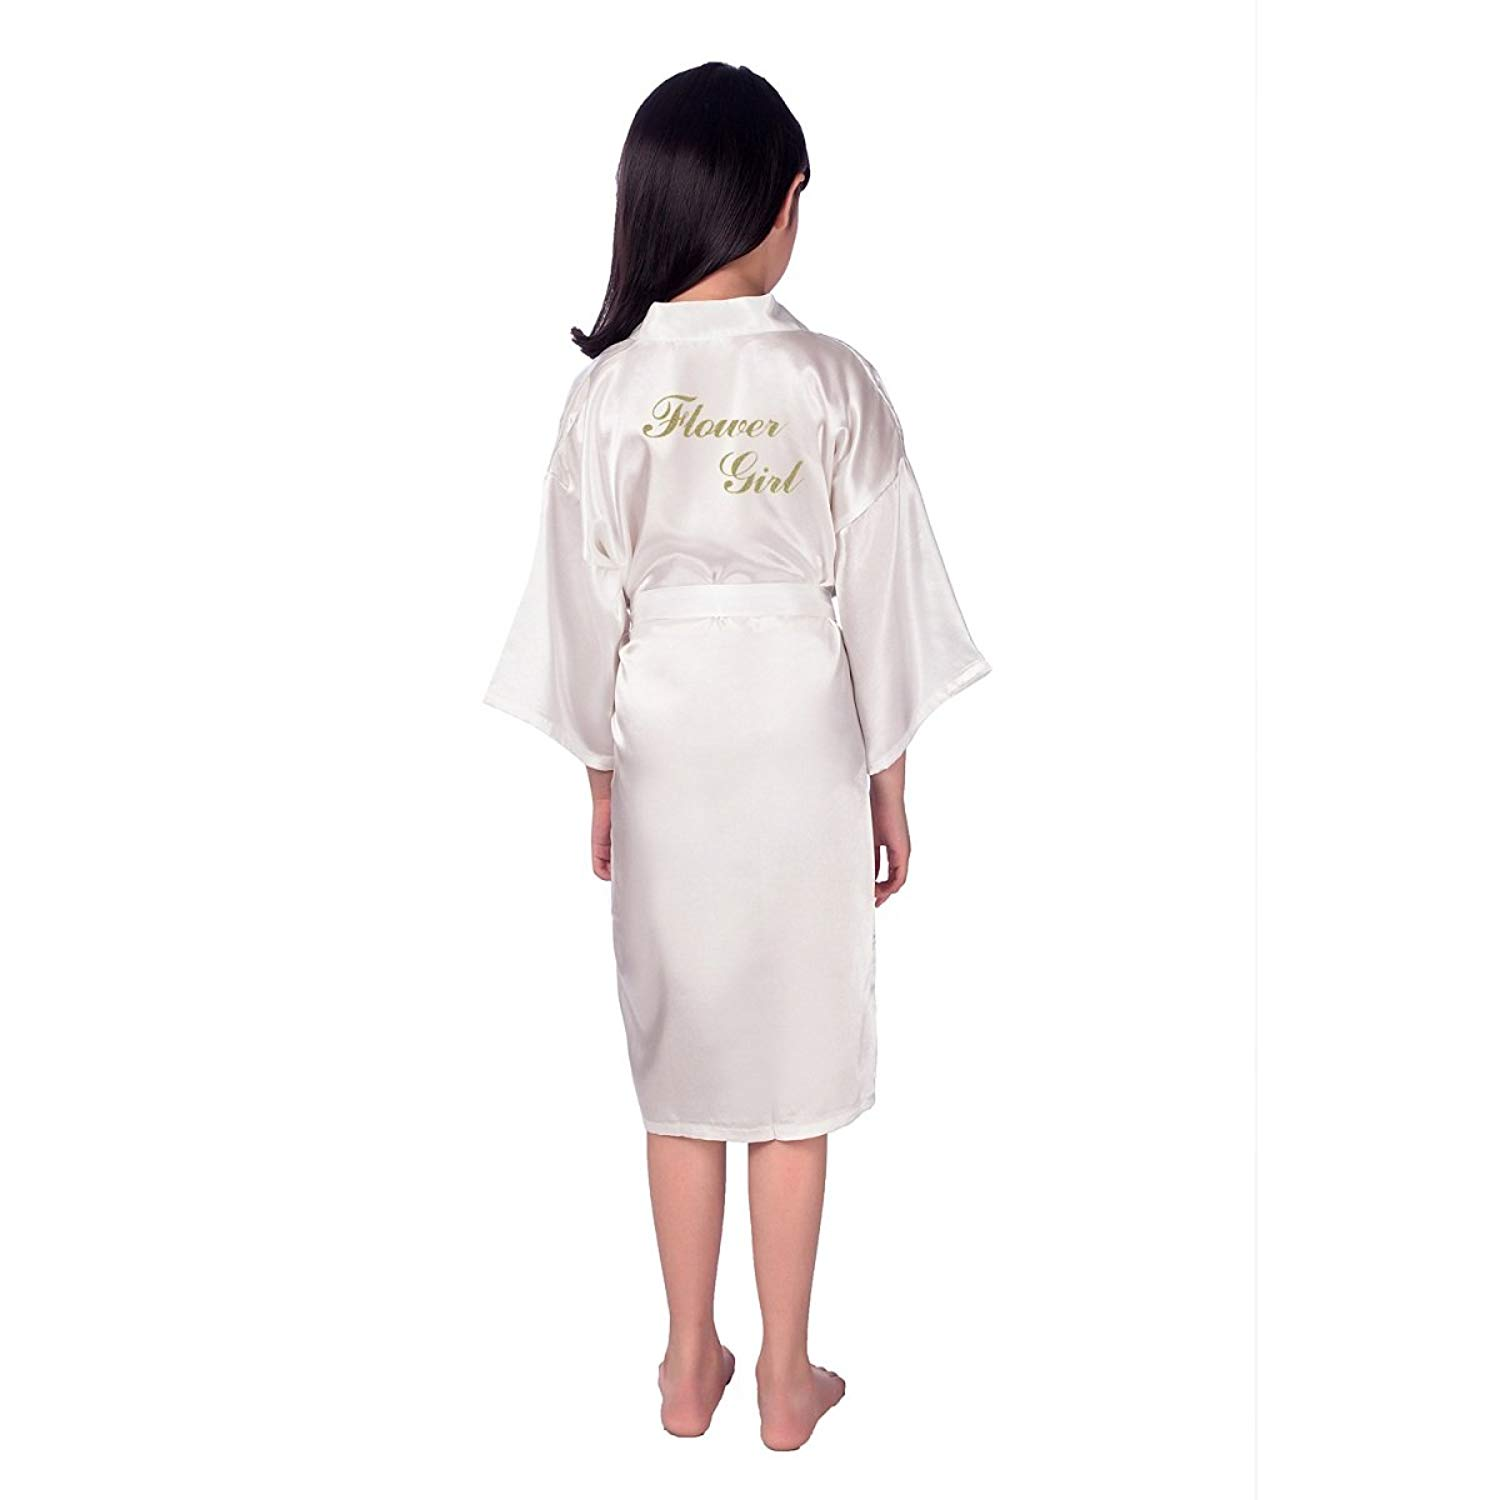 39148142fa Get Quotations · TheRobe Girl Robes Satin Nightgown Wedding Party Getting  Ready Robe with Gold Glitter